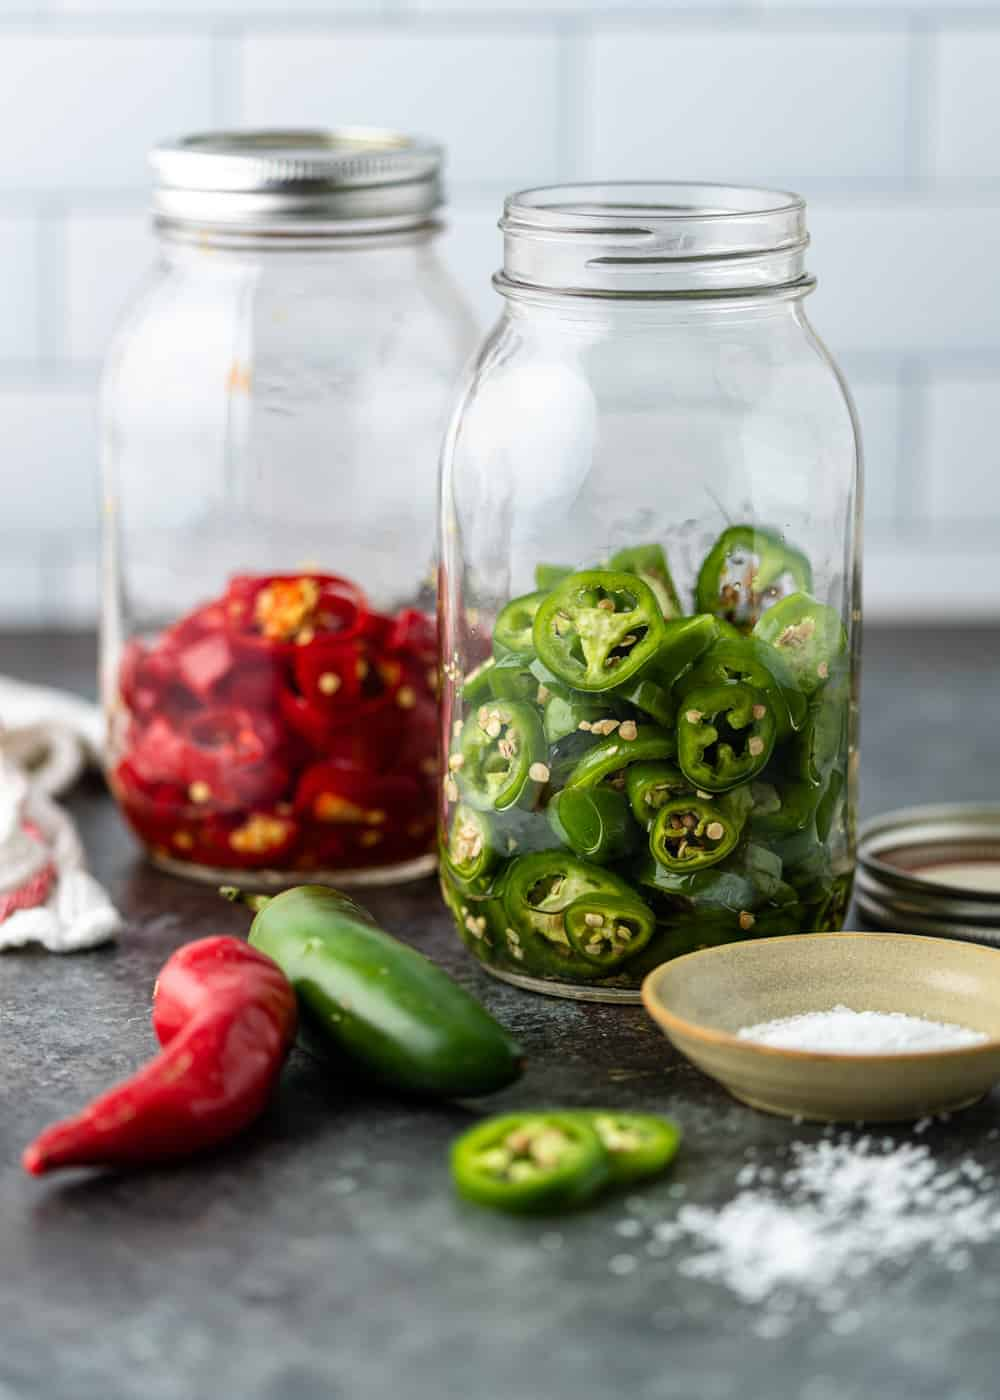 2 large glass mason jars on counter top - one with sliced red jalapenos and the other with green jalapenos